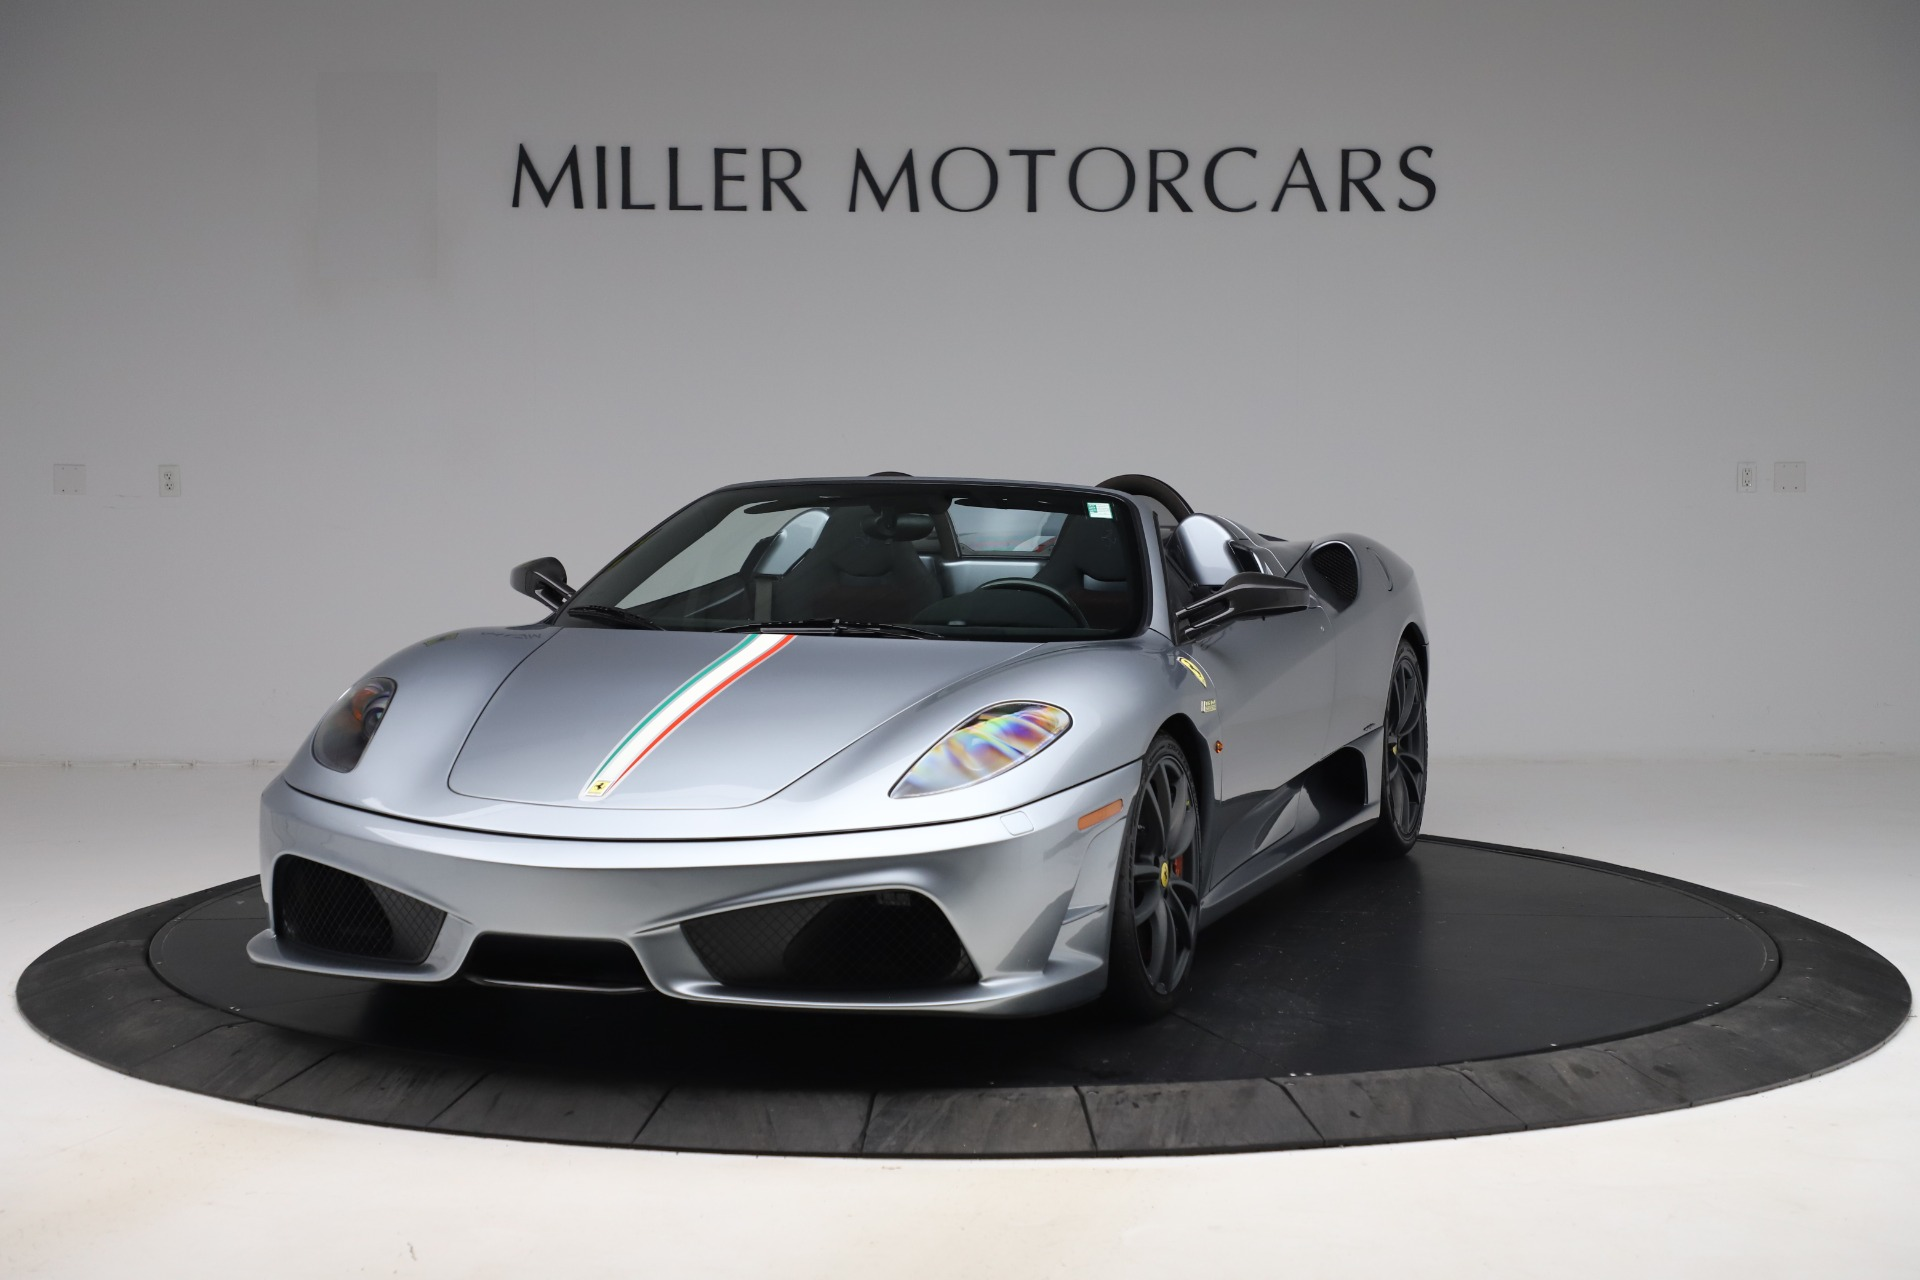 Used 2009 Ferrari 430 Scuderia Spider 16M for sale $329,900 at Alfa Romeo of Westport in Westport CT 06880 1